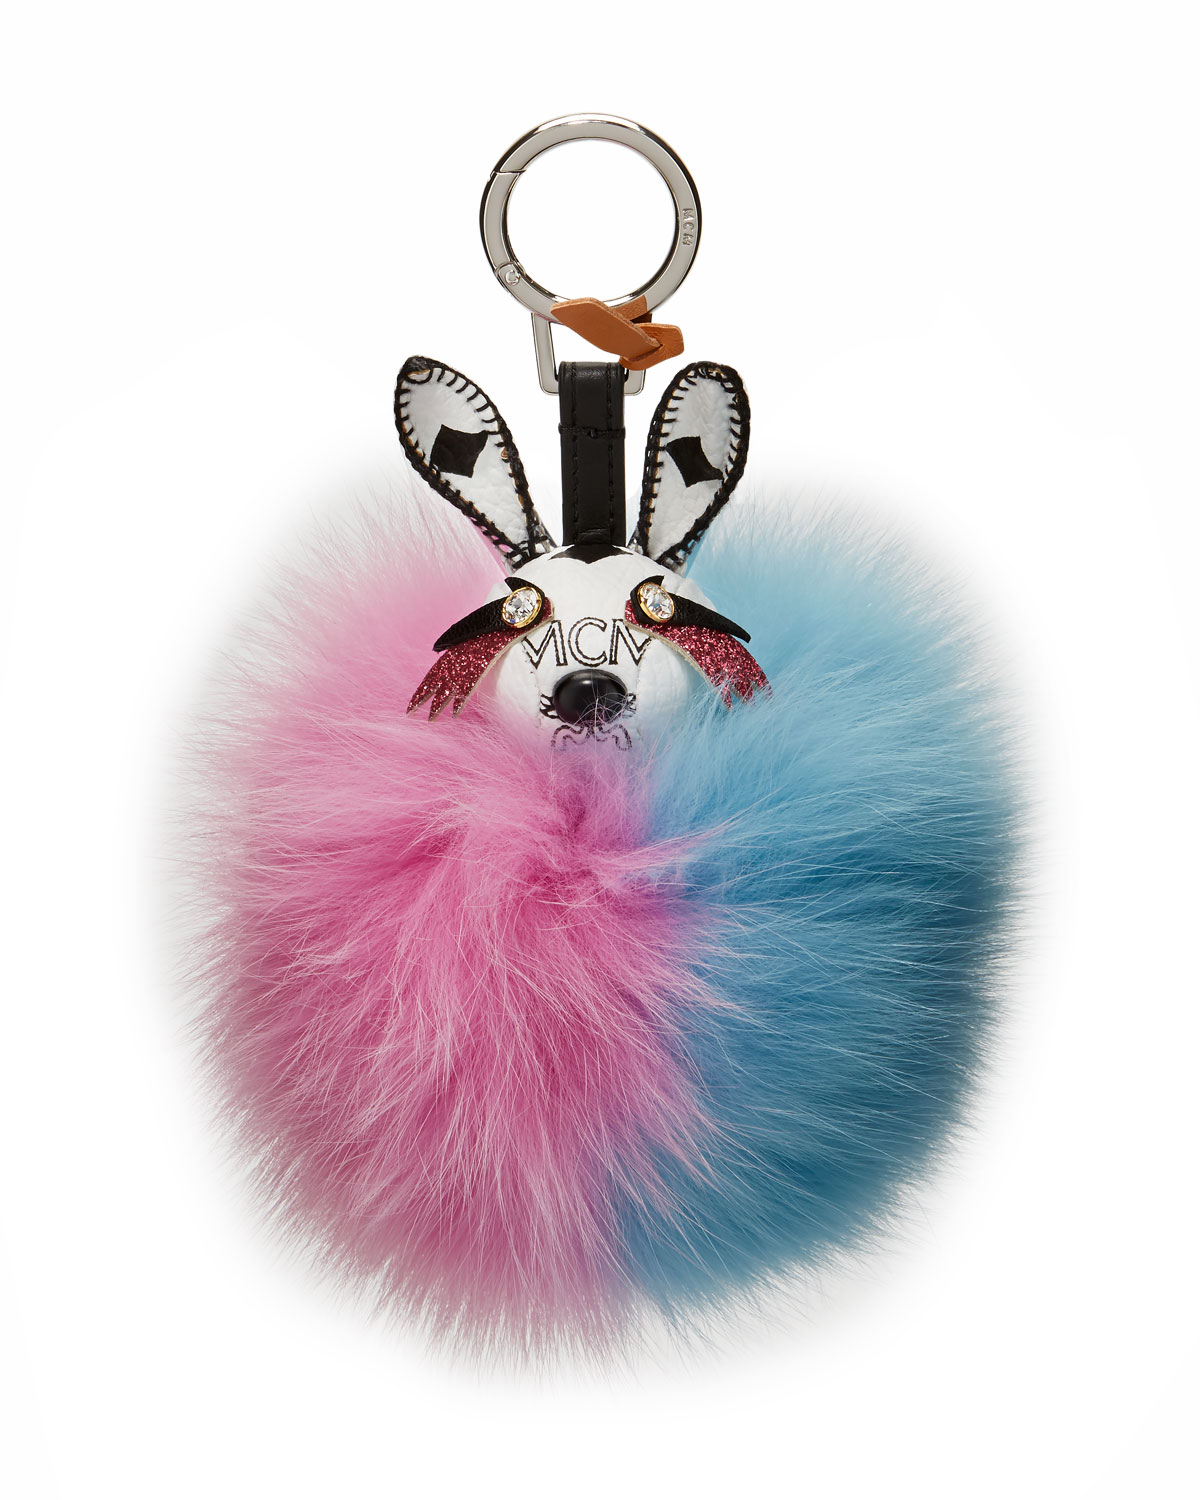 MCM Rabbit Fur Punk Charm for Handbag   Neiman Marcus 7d4addf6e7